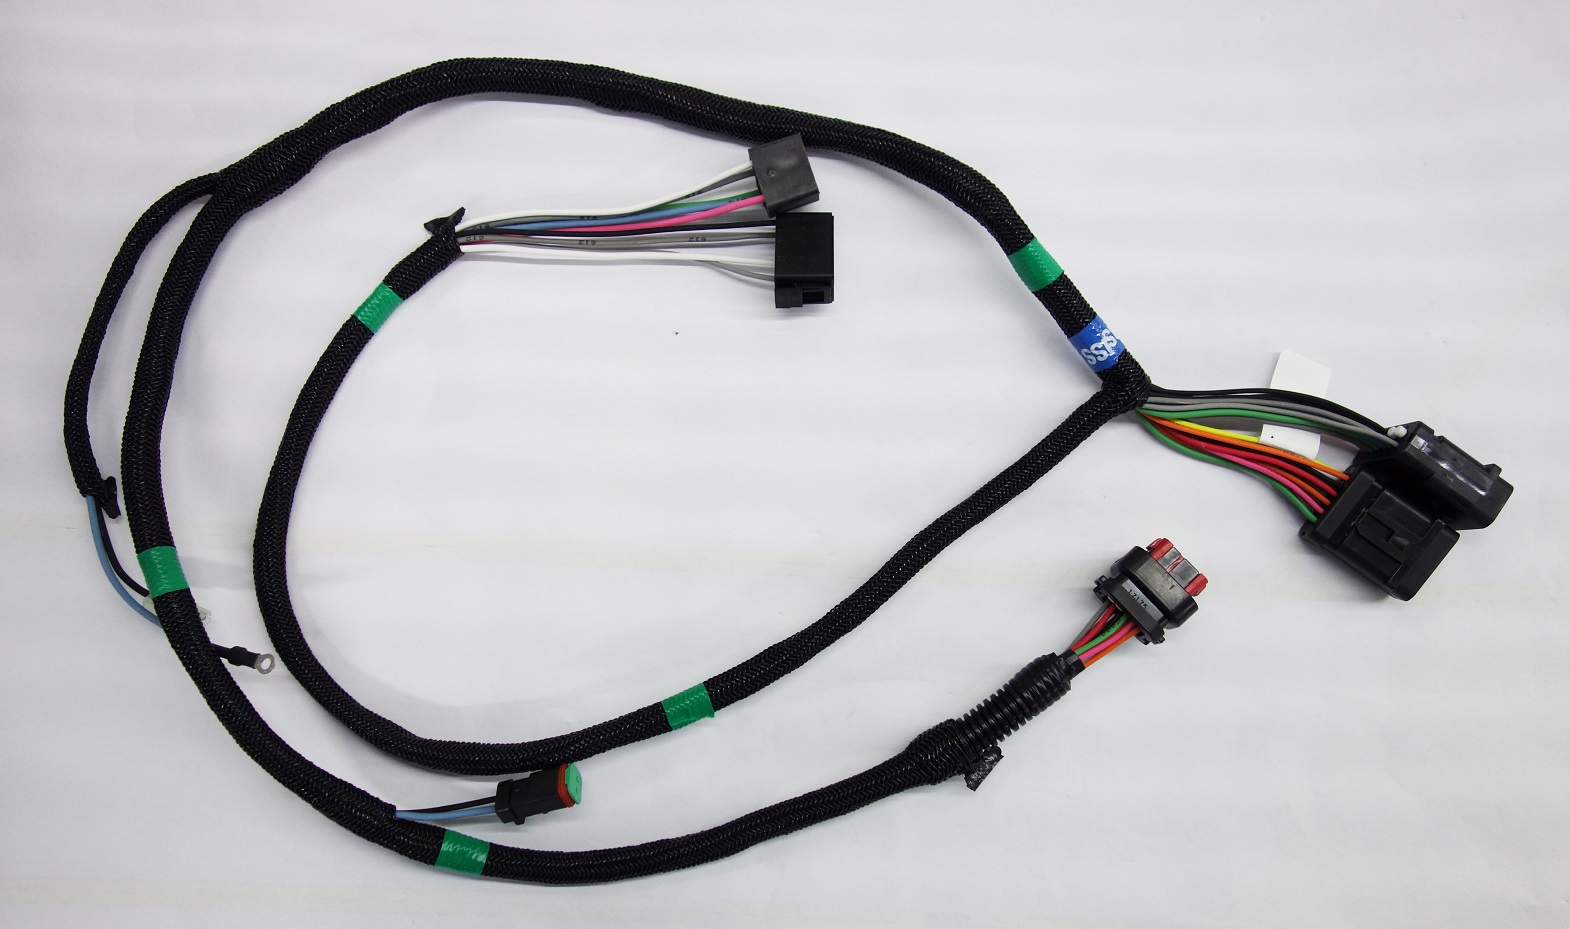 The wire harness is an assembly of wires, terminals, connectors, etc. for signal transmission.